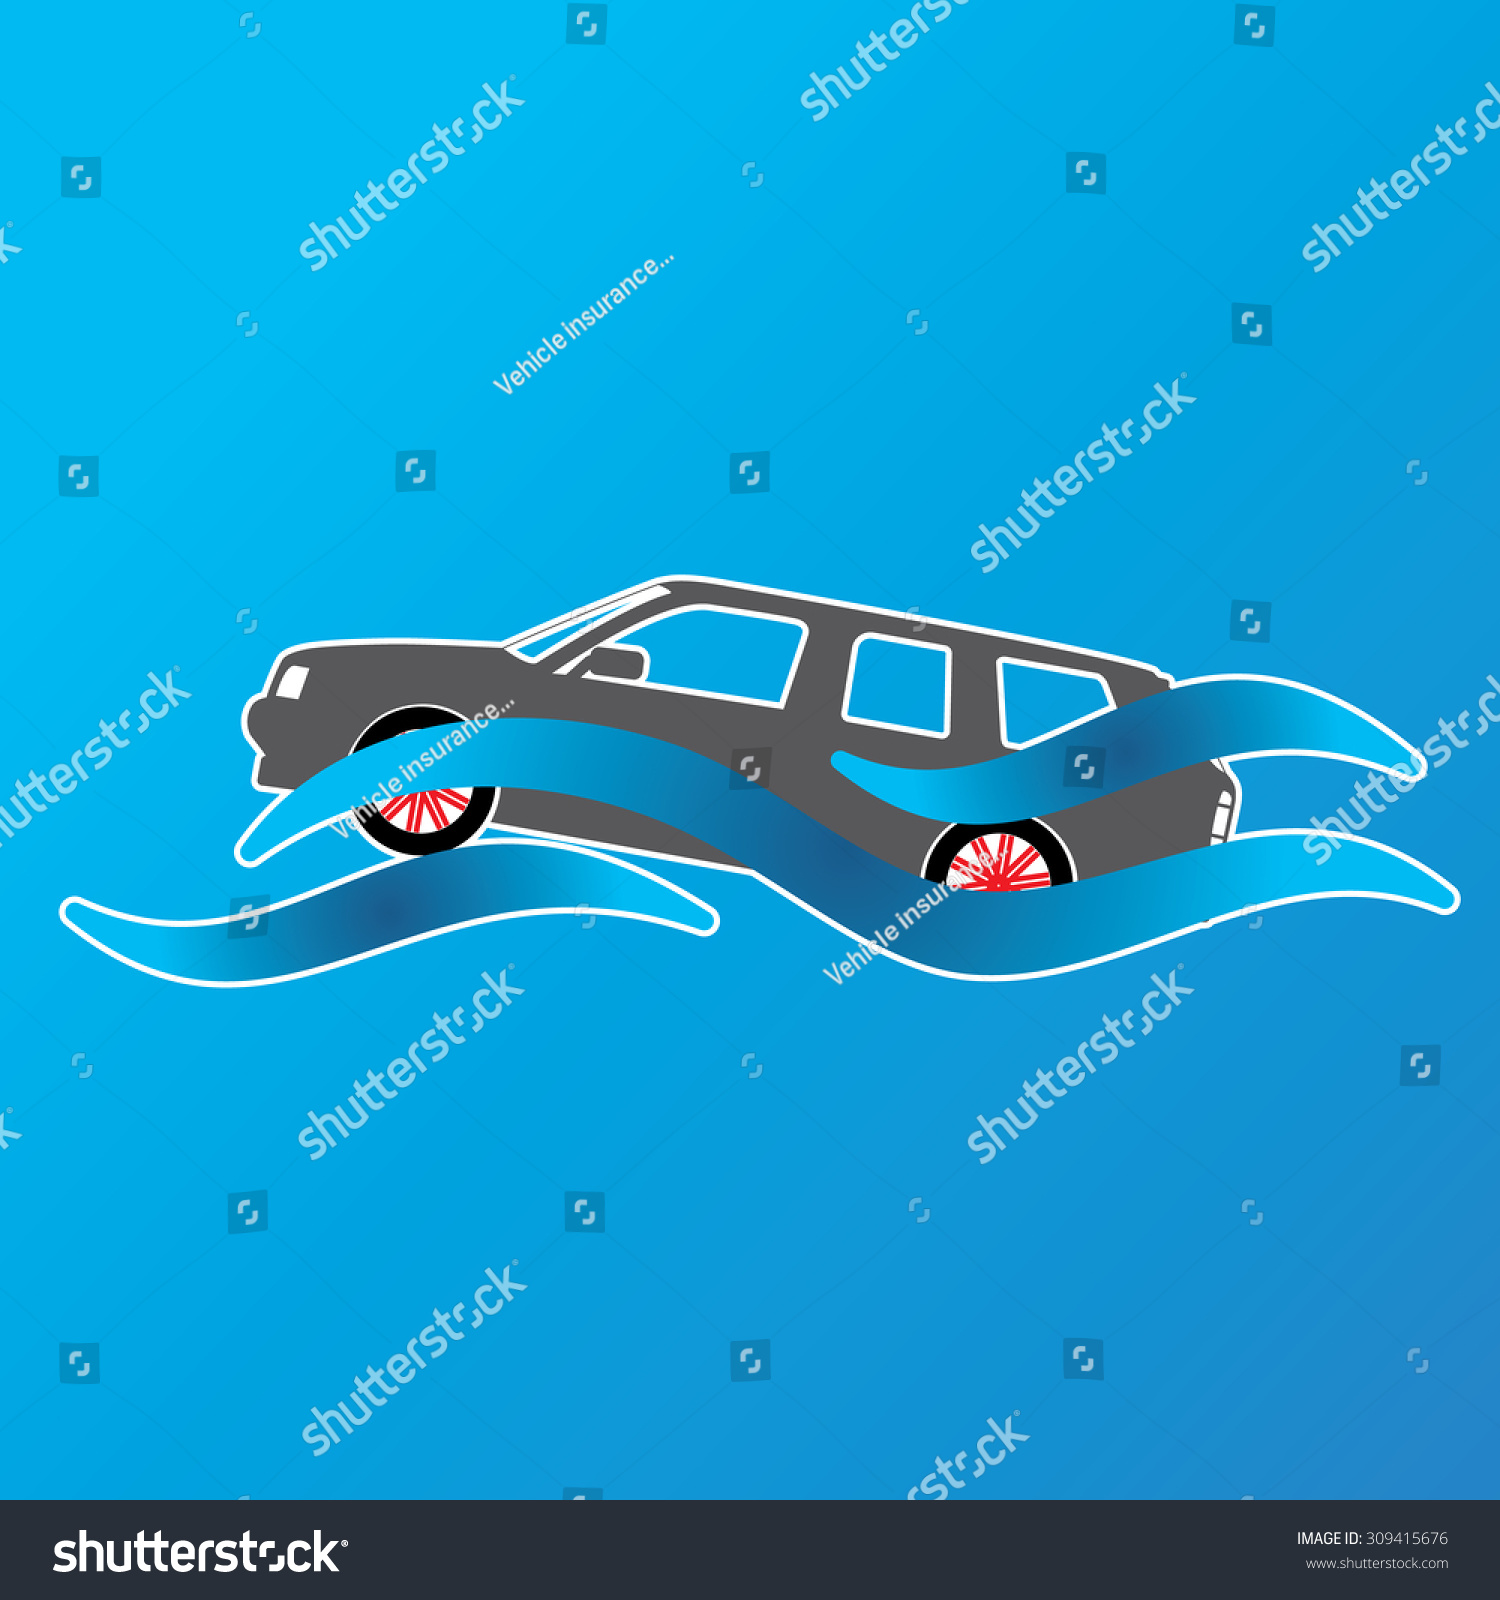 Symbol car submerged pool water vector stock vector 309415676 symbol of a car submerged in a pool of water in vector illustration format biocorpaavc Choice Image